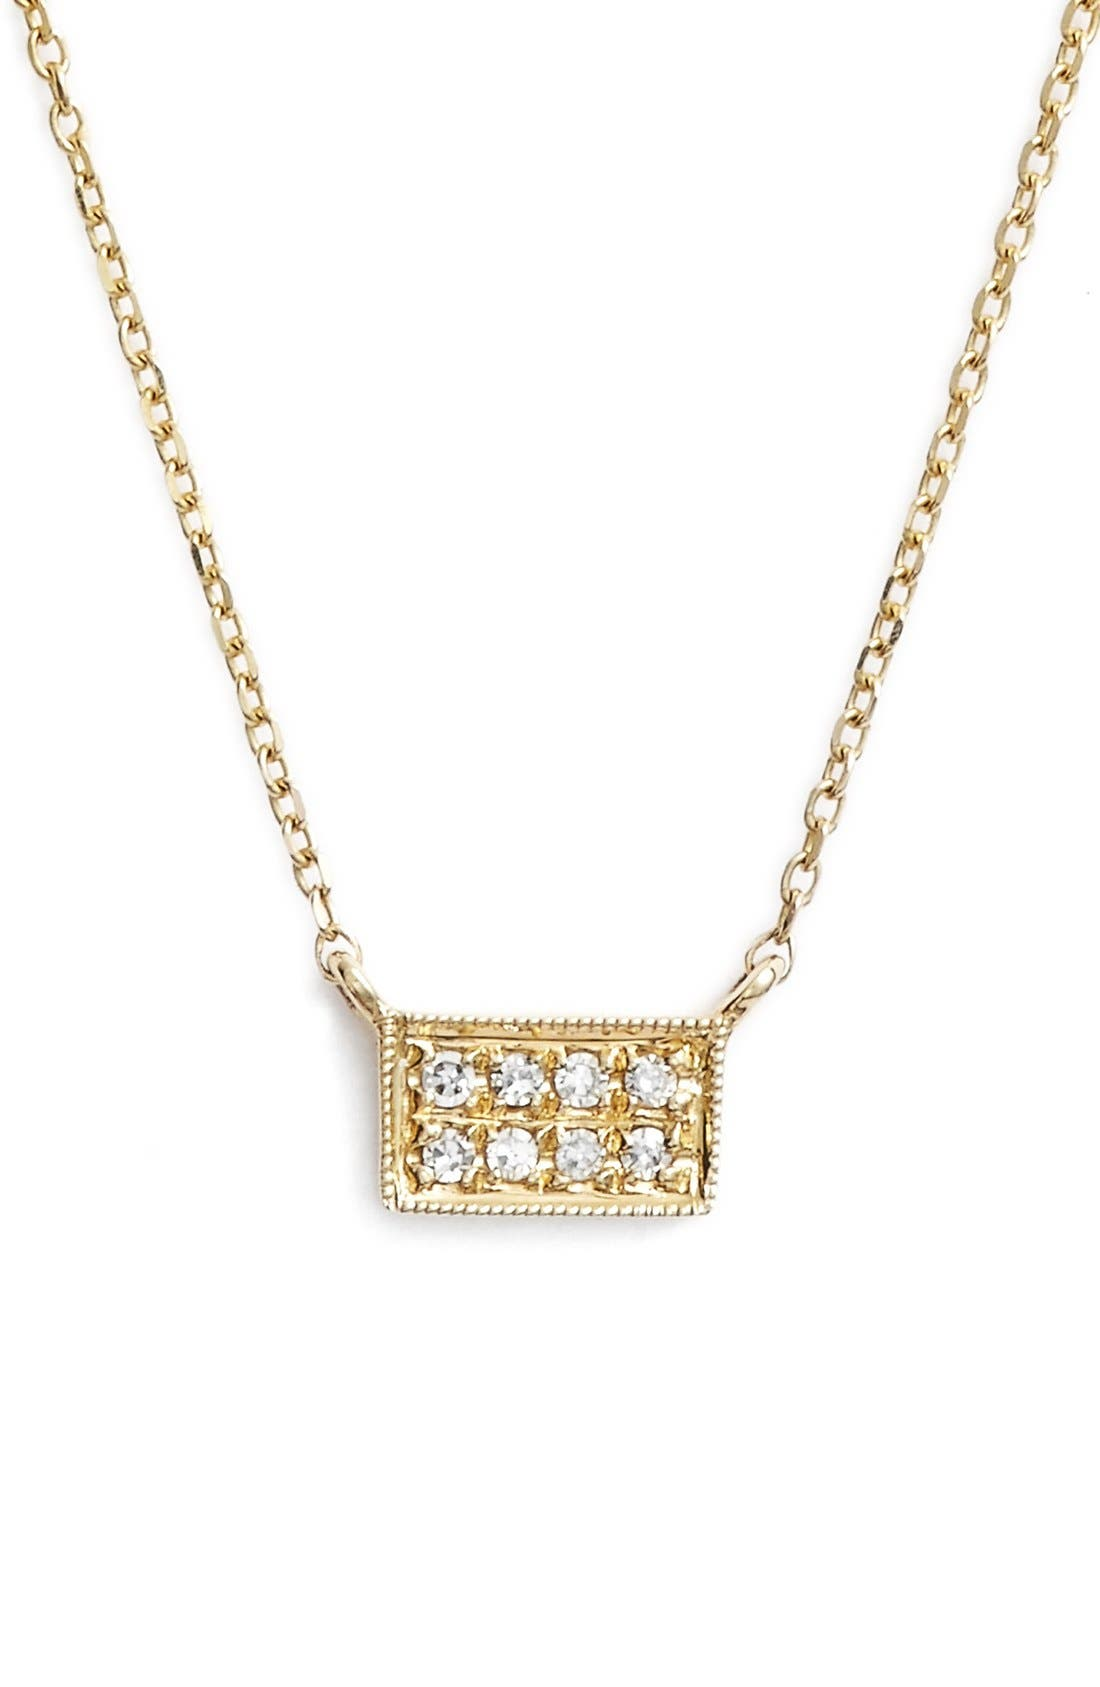 Dana Rebecca Designs 'Katie' Diamond Bar Pendant Necklace